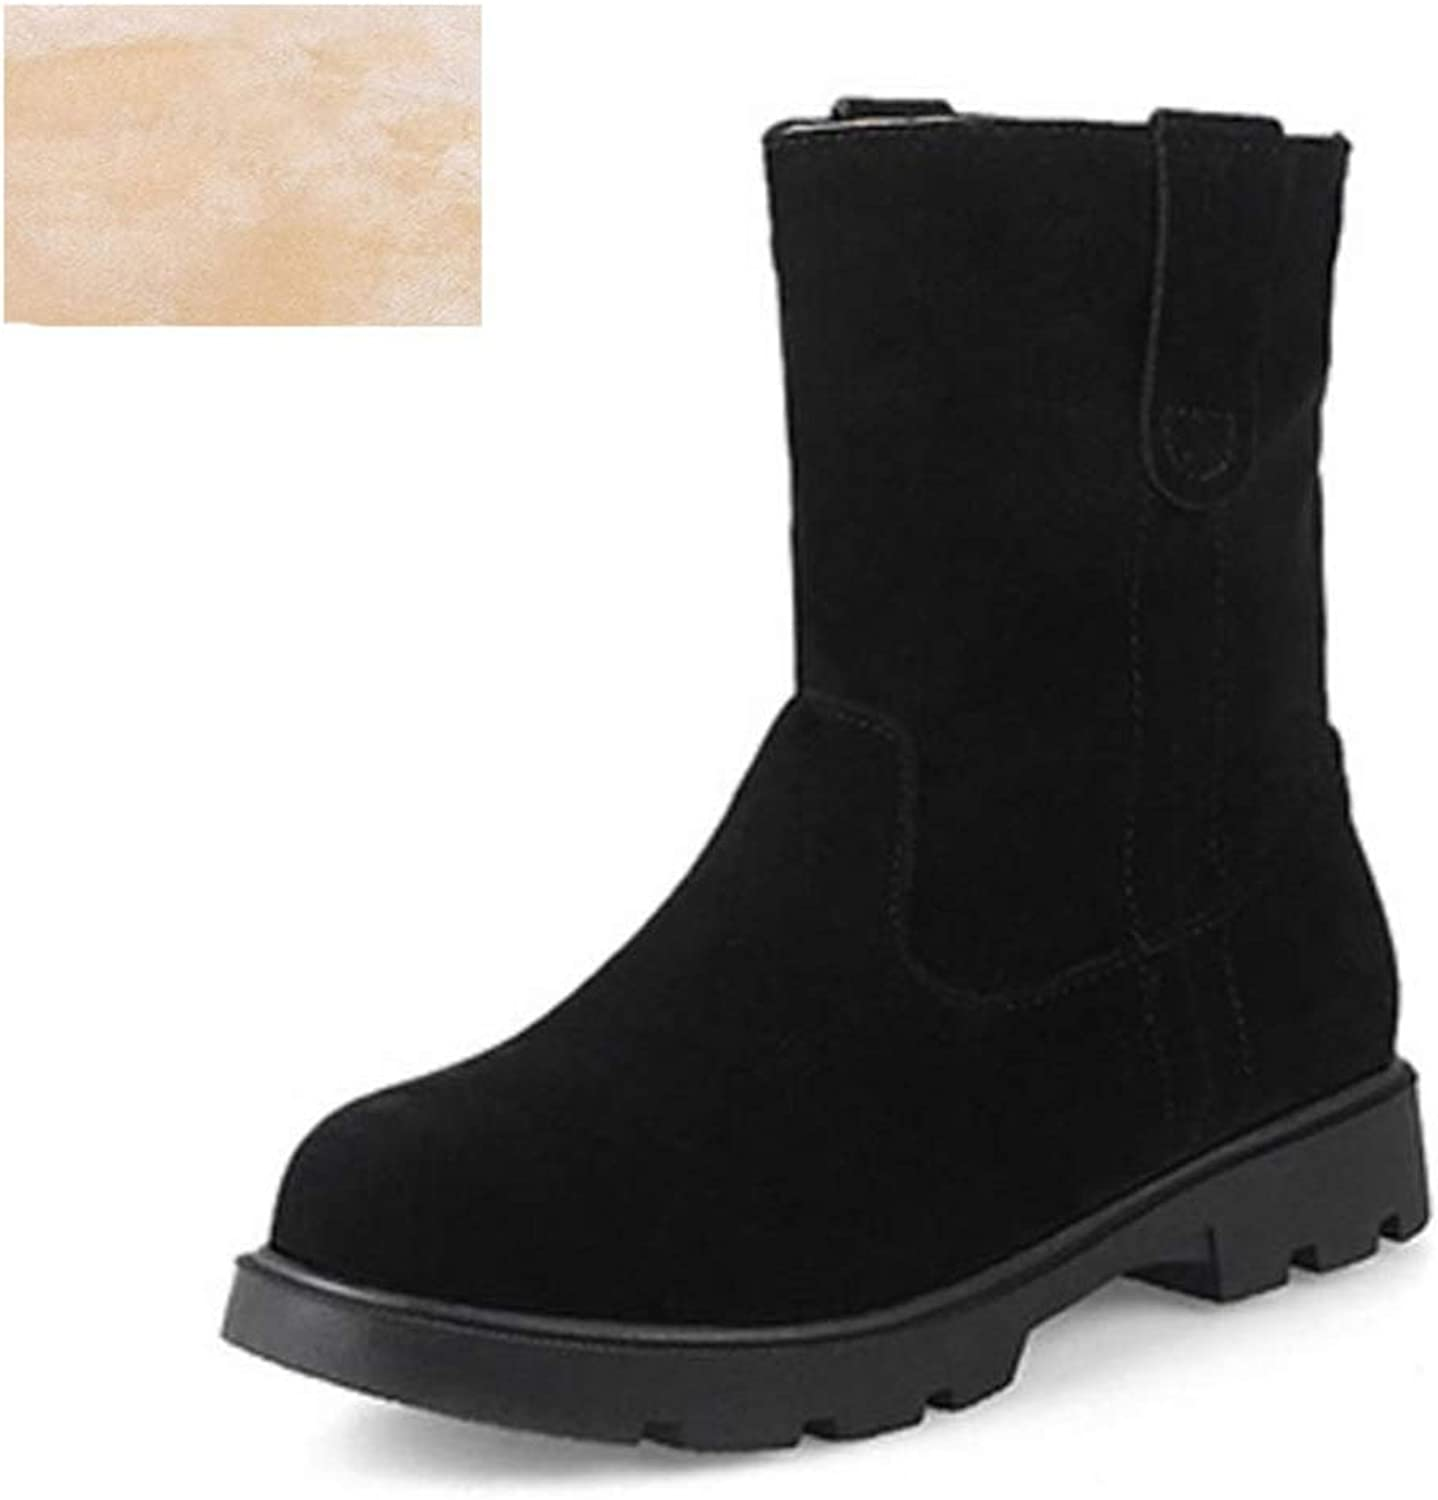 T-JULY Women's Half Short Snow Boots Thick Fur Flats Boots for Cold Winter Mid Calf Boots for Women Footwears